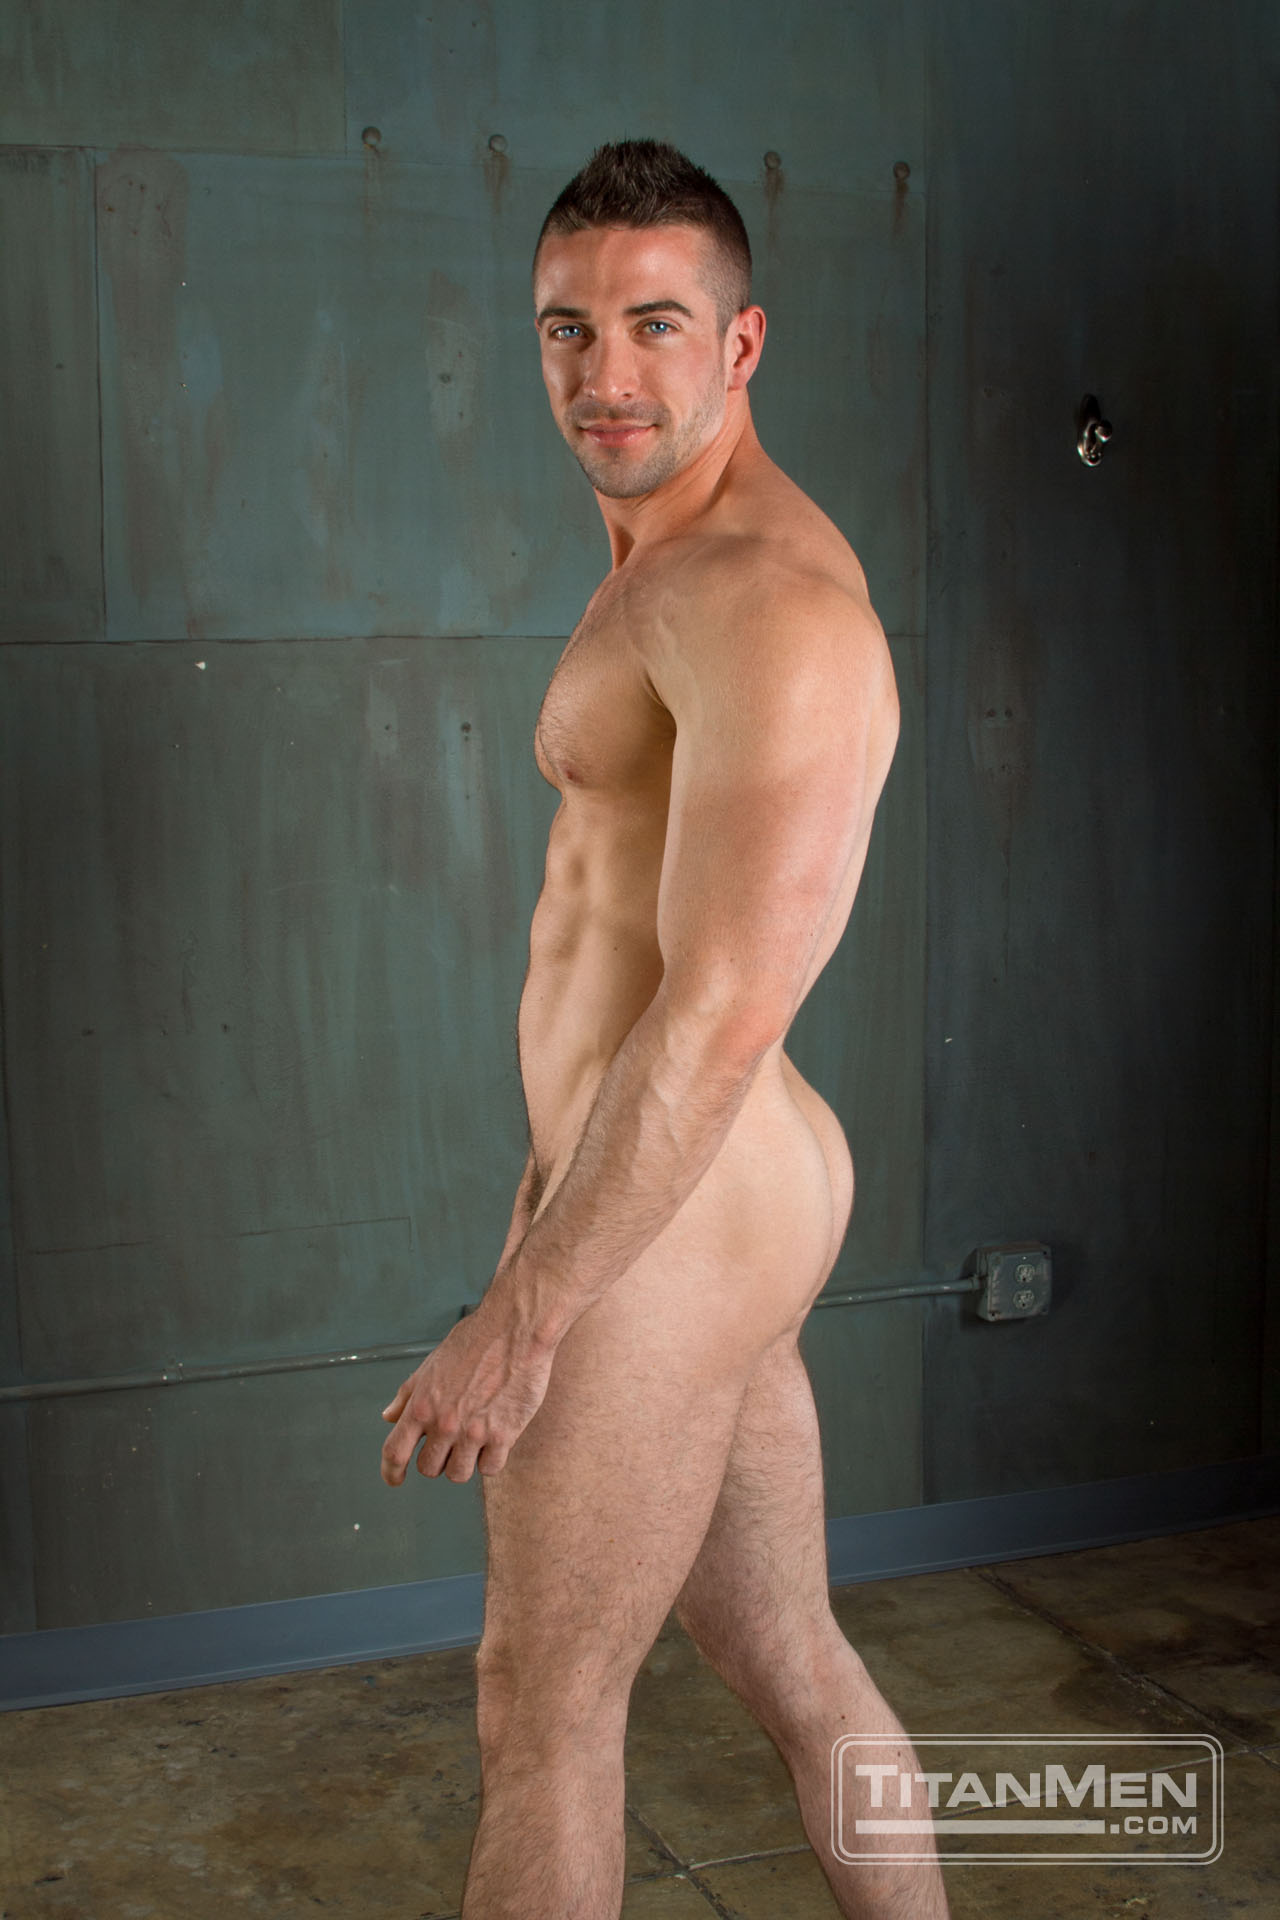 hunter gay porn S is for Sexy - 1 - Serene Hunter, Gay Porn 11: xHamster.